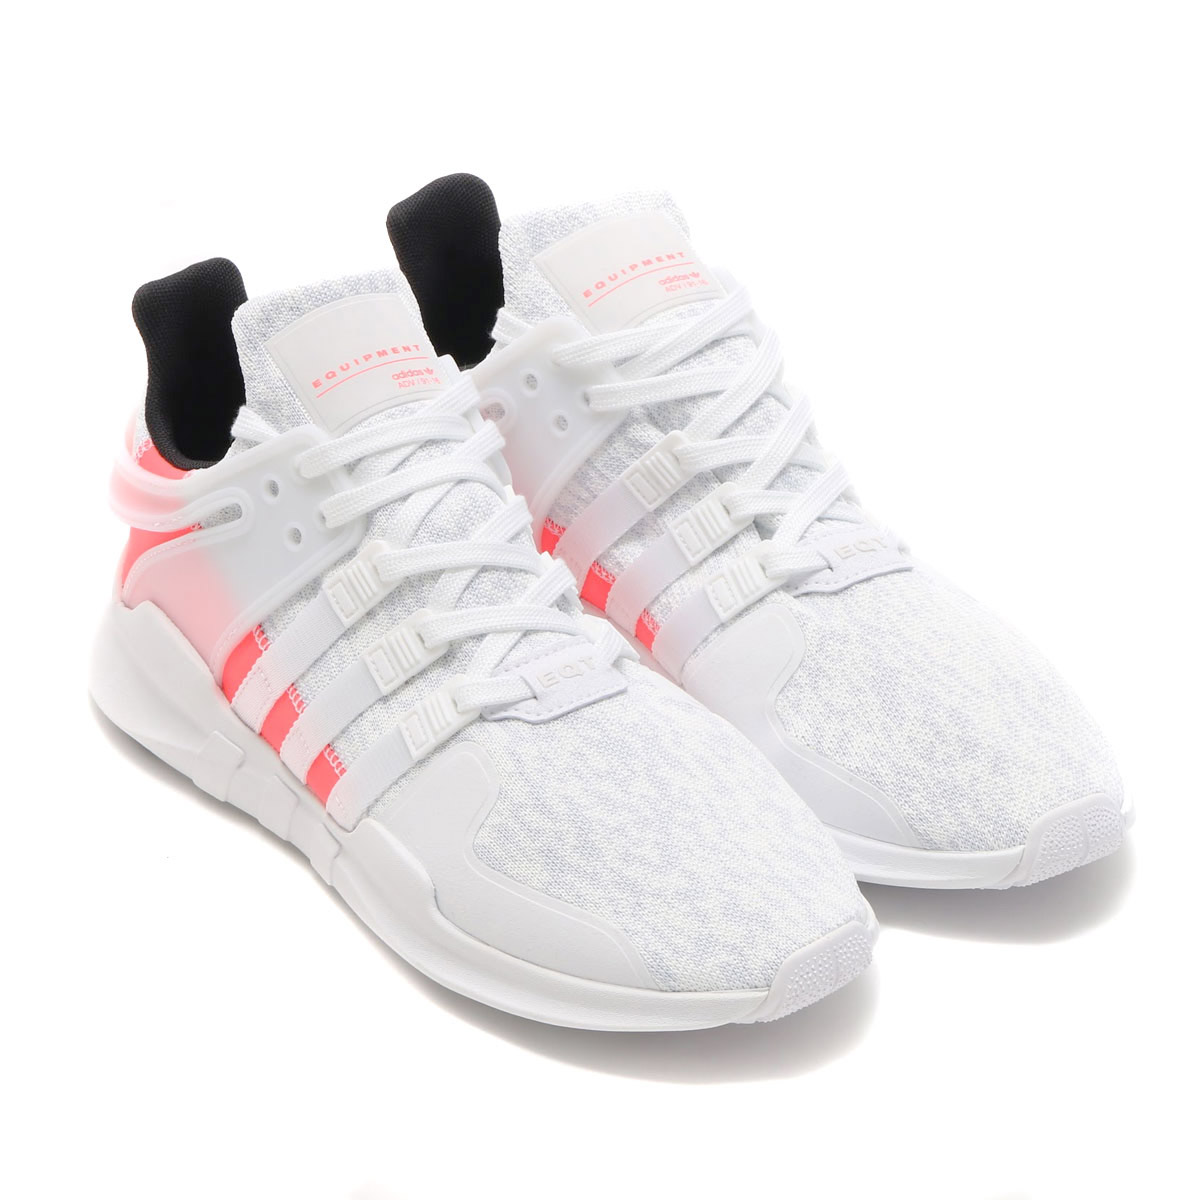 low priced d22d6 e7b74 adidas Originals EQT SUPPORT ADV (Adidas original Sue ticket men Tosa port)  (Crystal White/Running White/Turbo) 17SS-I